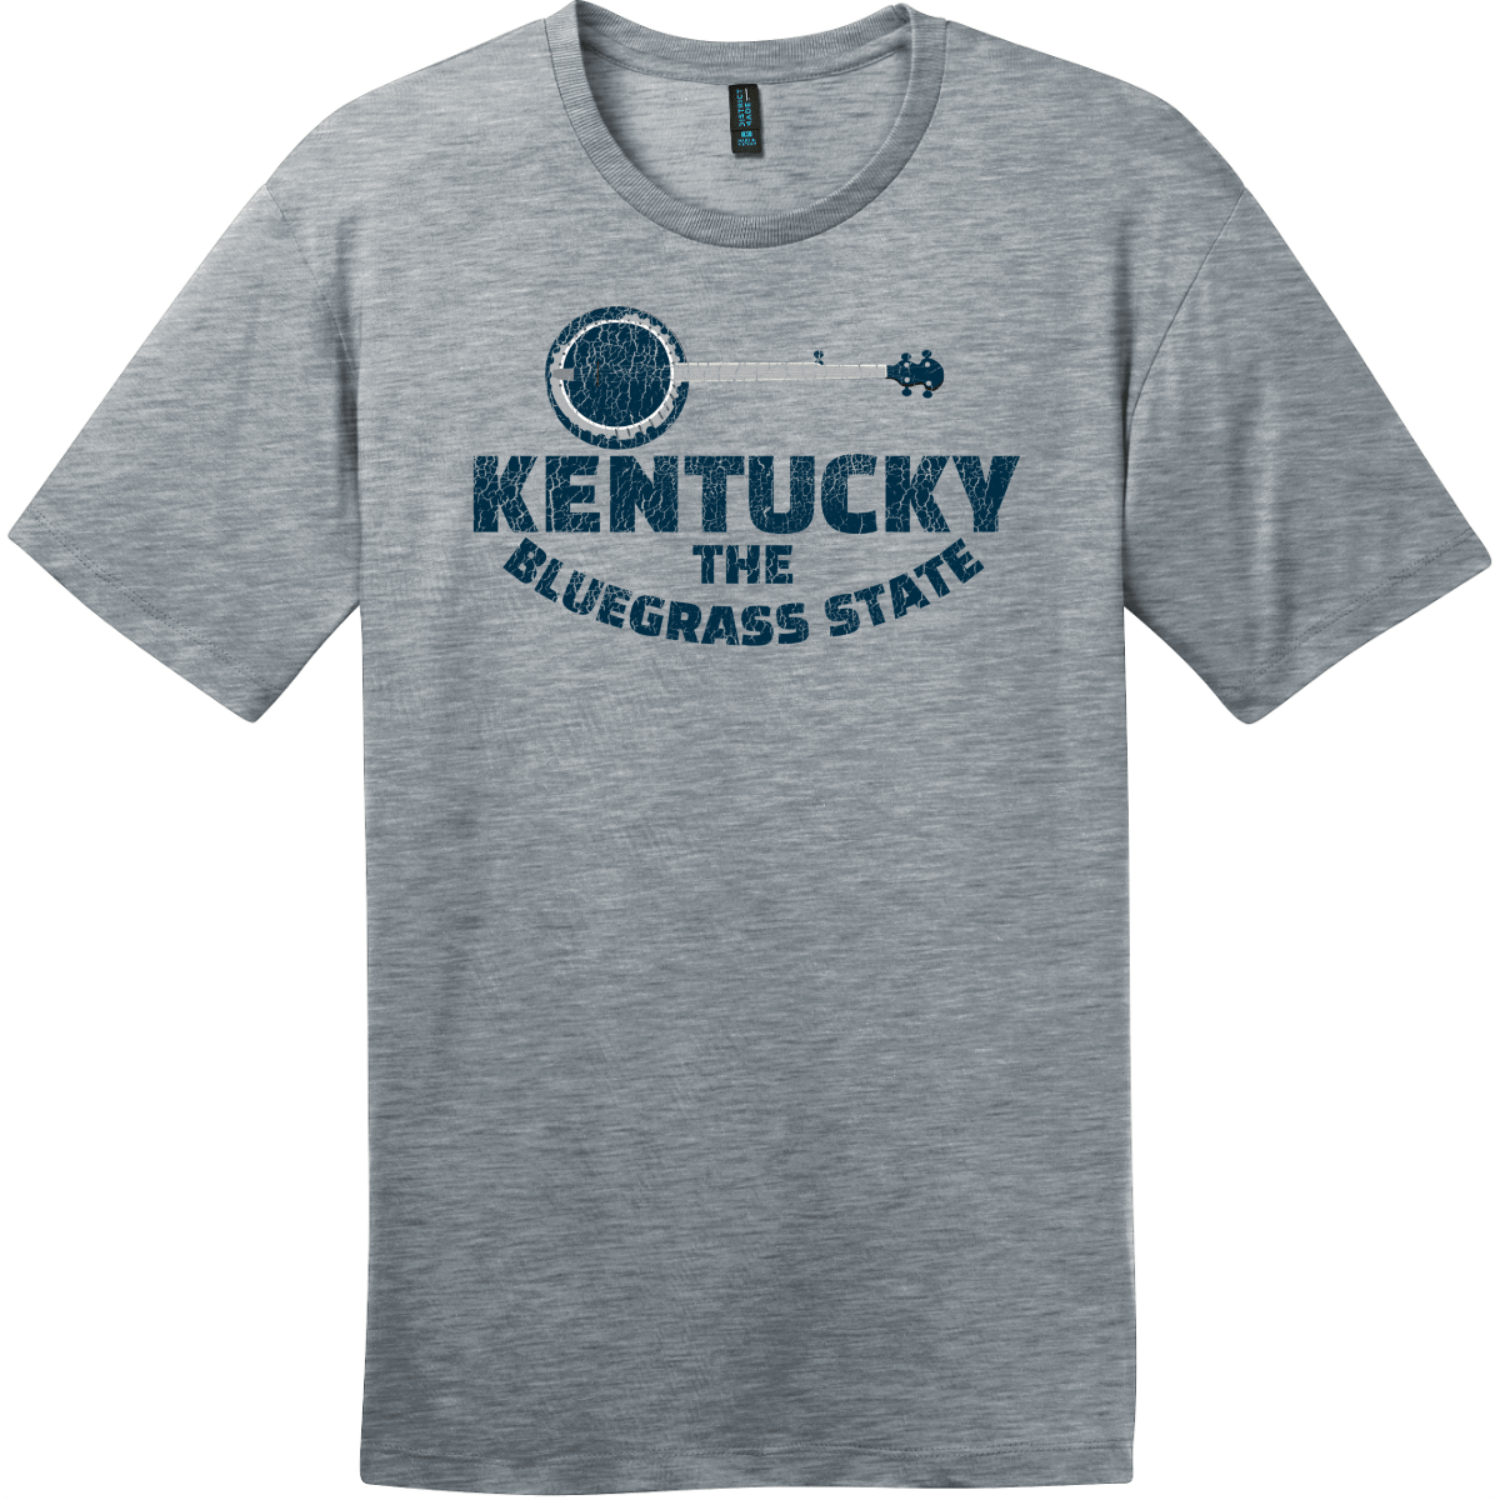 Kentucky Bluegrass State Banjo Retro T-Shirt Heathered Steel District Perfect Weight Tee DT104